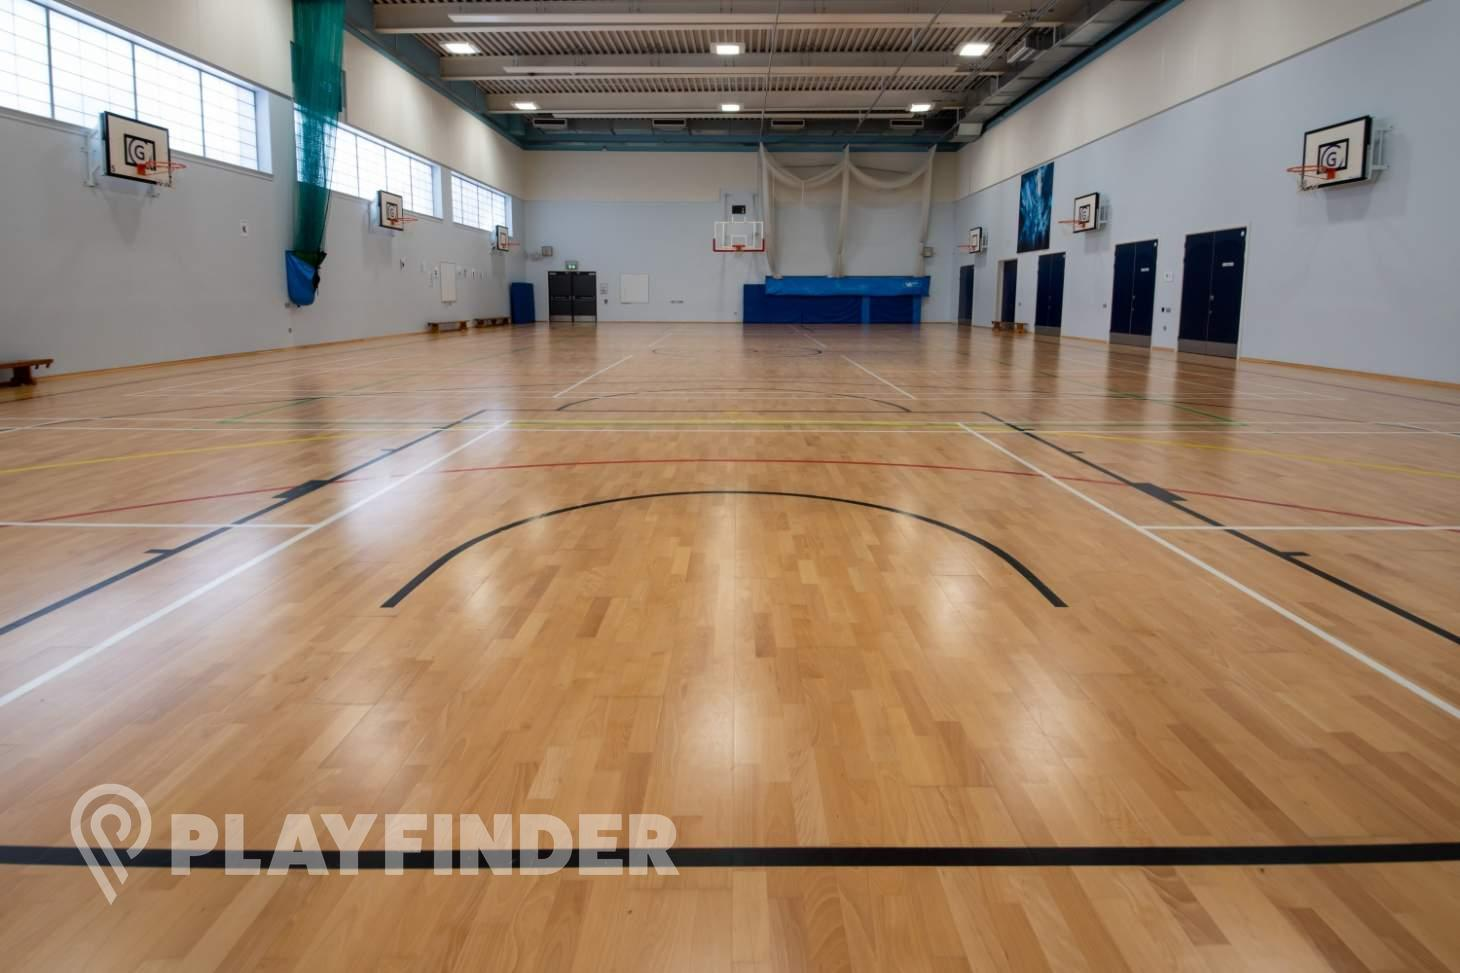 Harris Academy St Johns Wood Court | Sports hall volleyball court